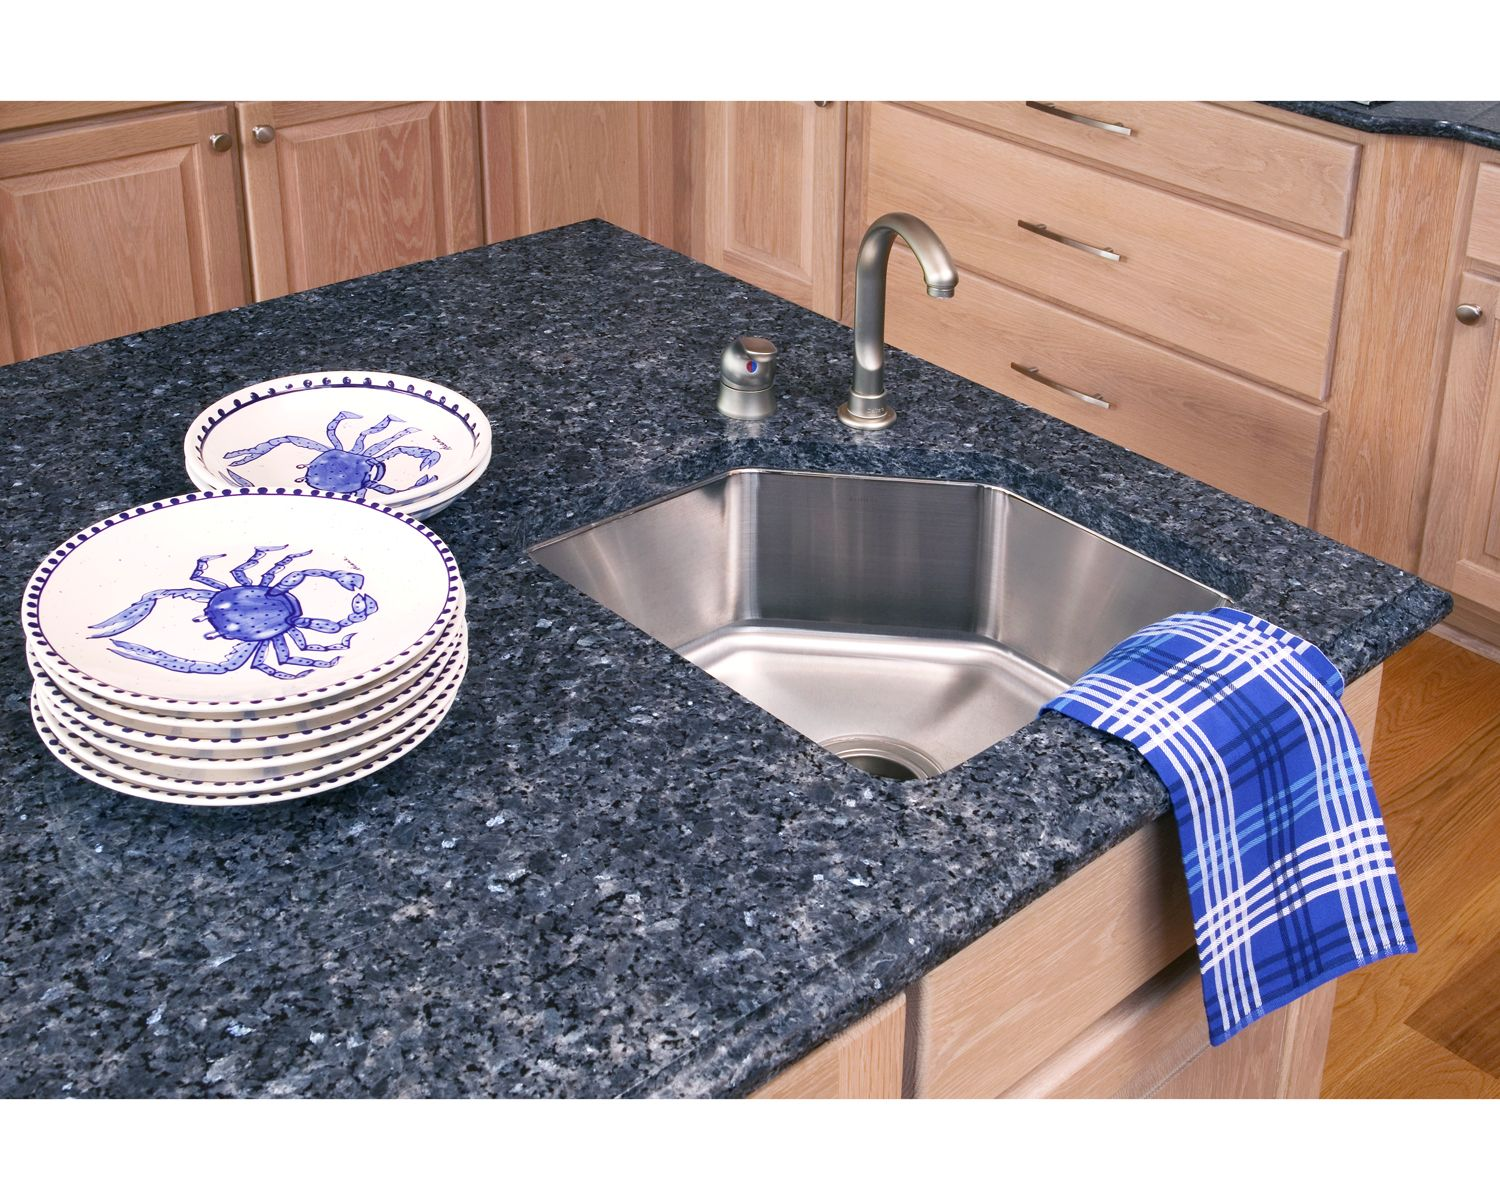 Granite Kitchen Countertops Backsplash Ideas And